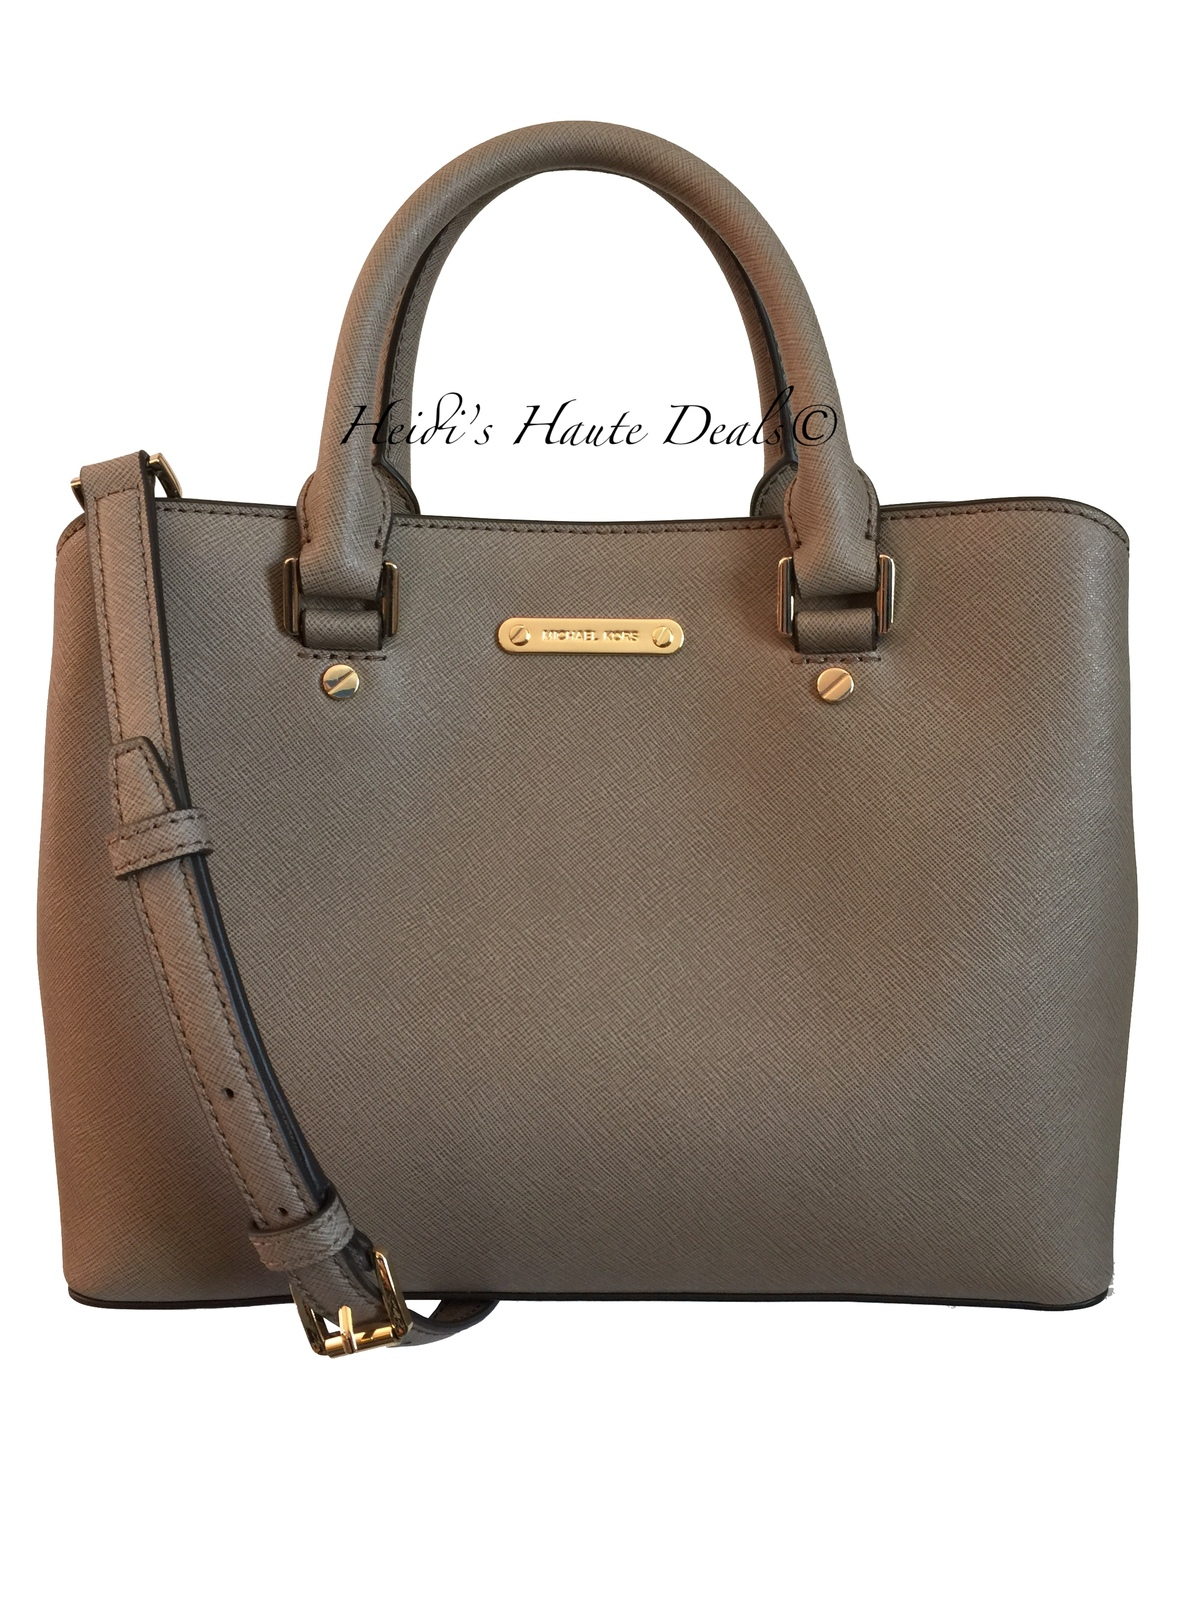 f82d15455f70 Img 3591. Img 3591. Previous. NWT MICHAEL KORS Savannah Medium Satchel Dark  Dune Saffiano Leather Bag Purse